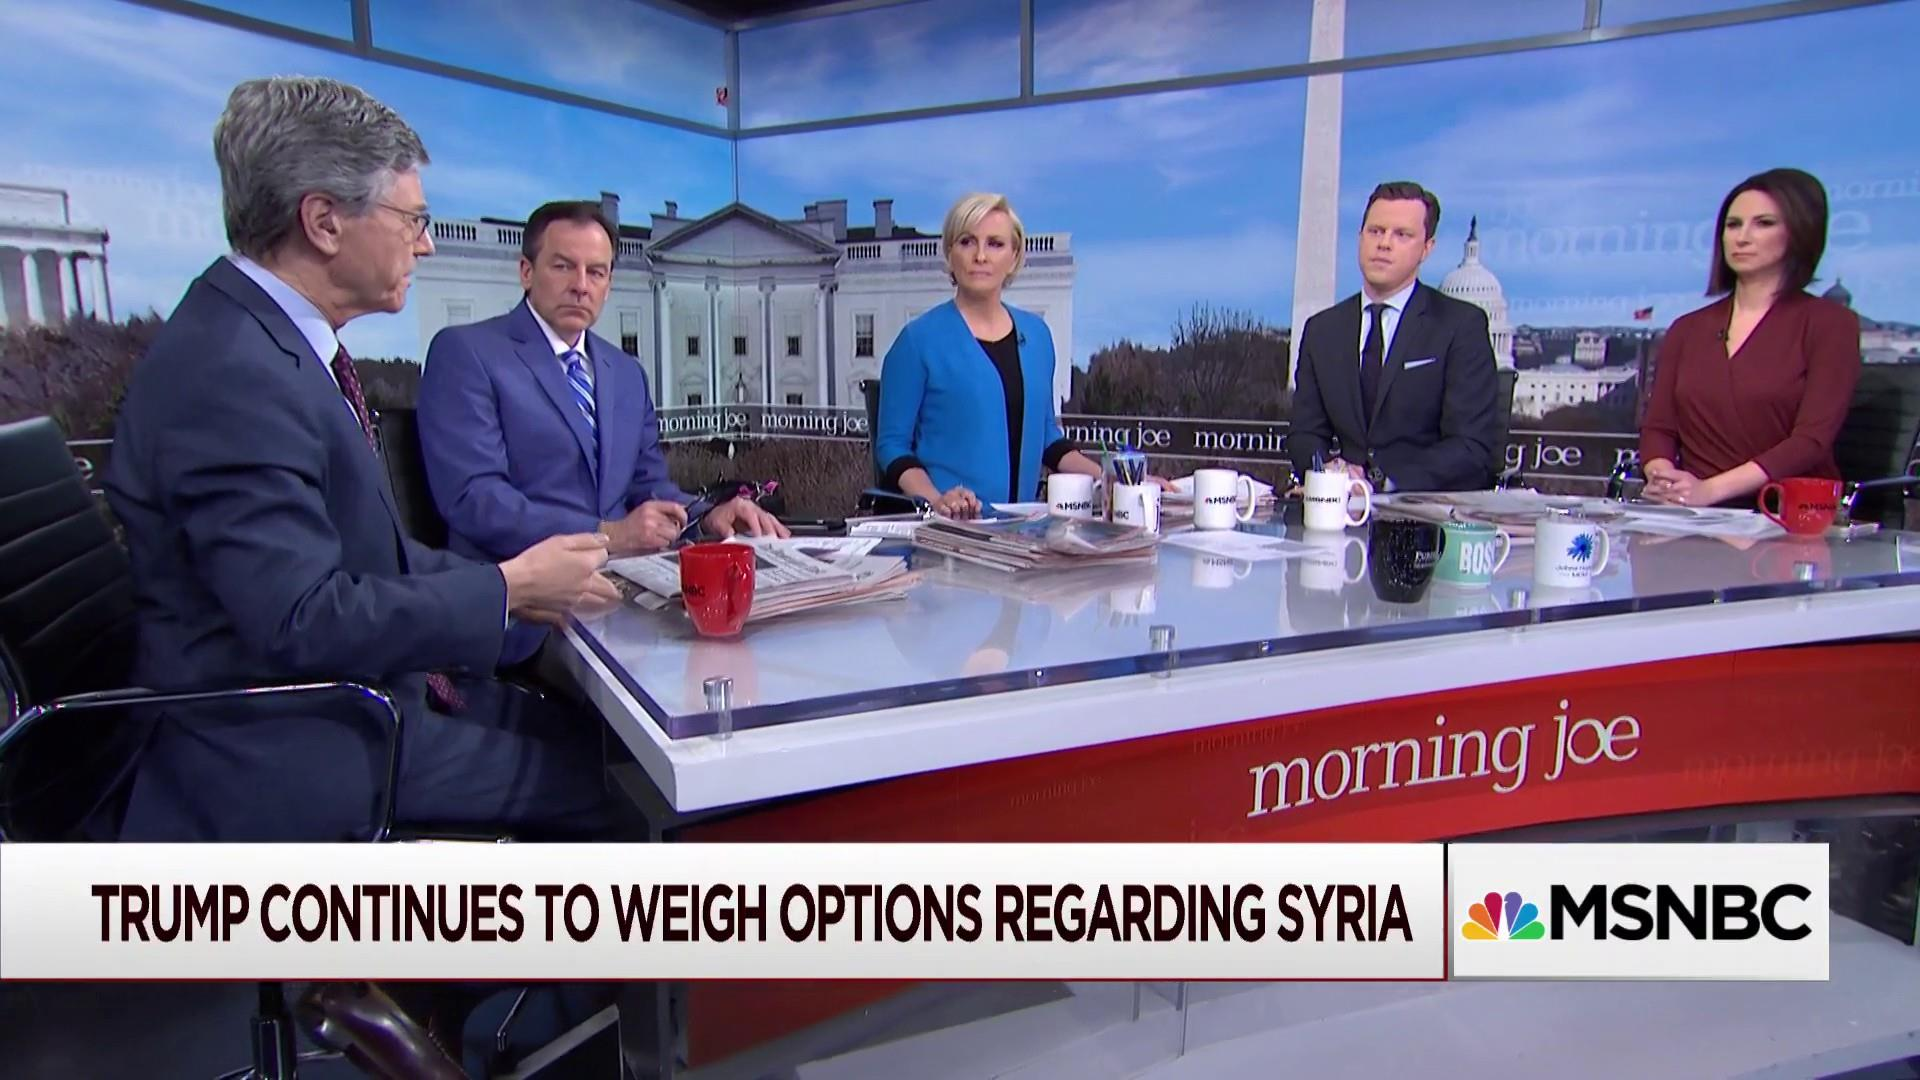 Should the US be part of solution in Syria or leave?